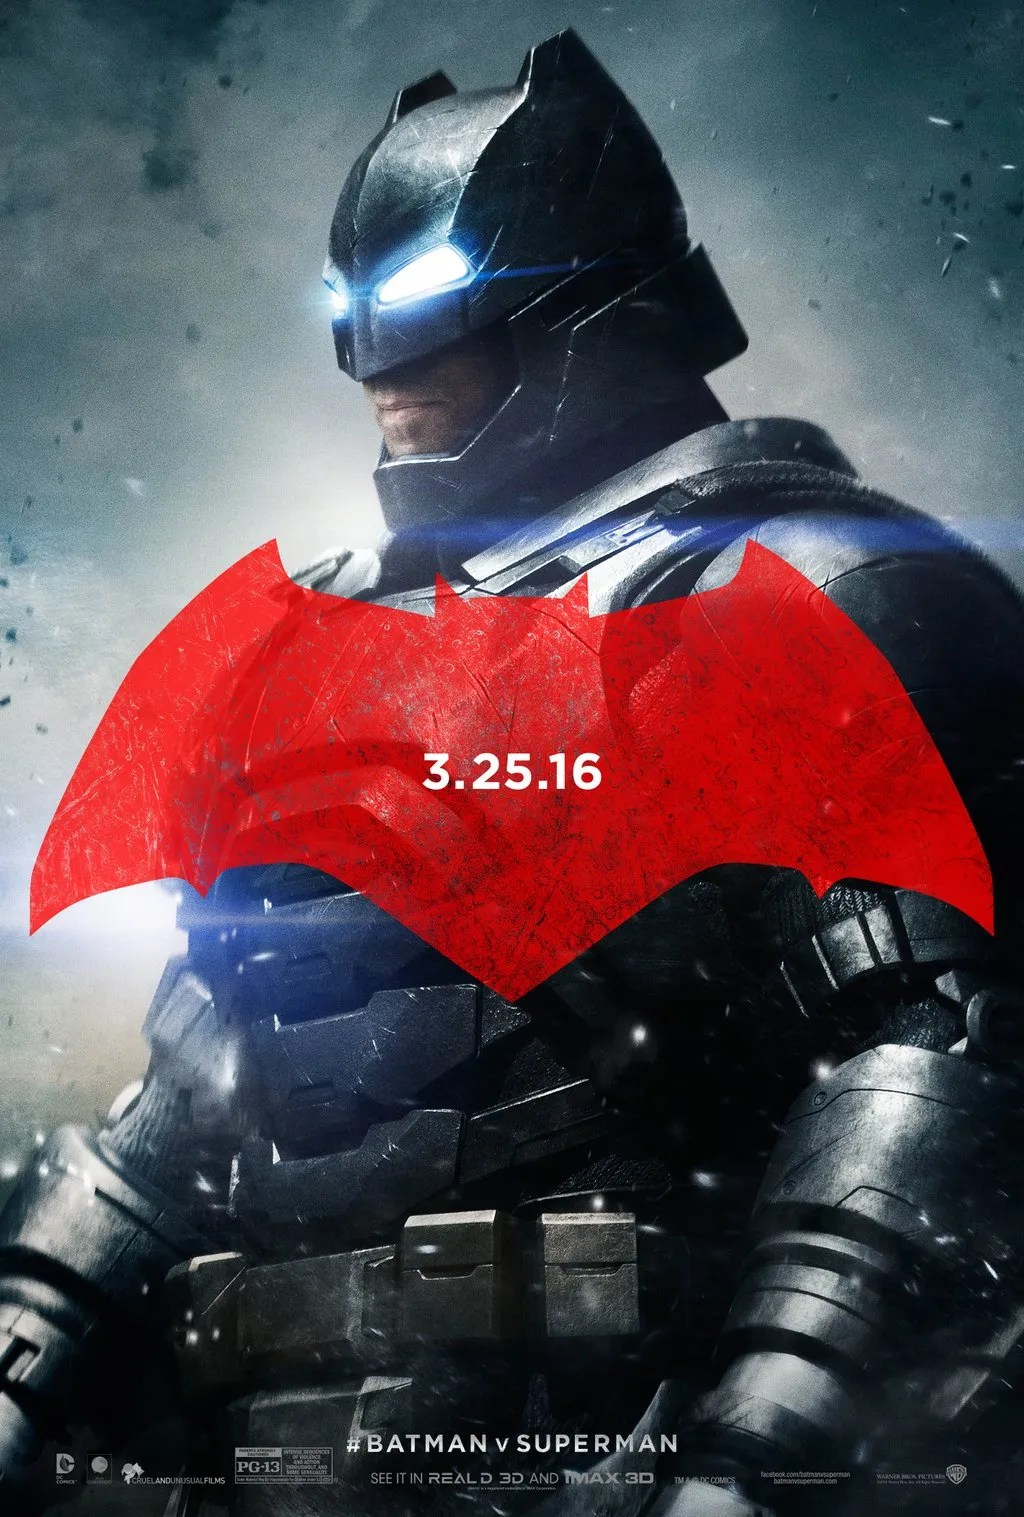 Batman Vs Superman Batcave Shown In New Image  Collider